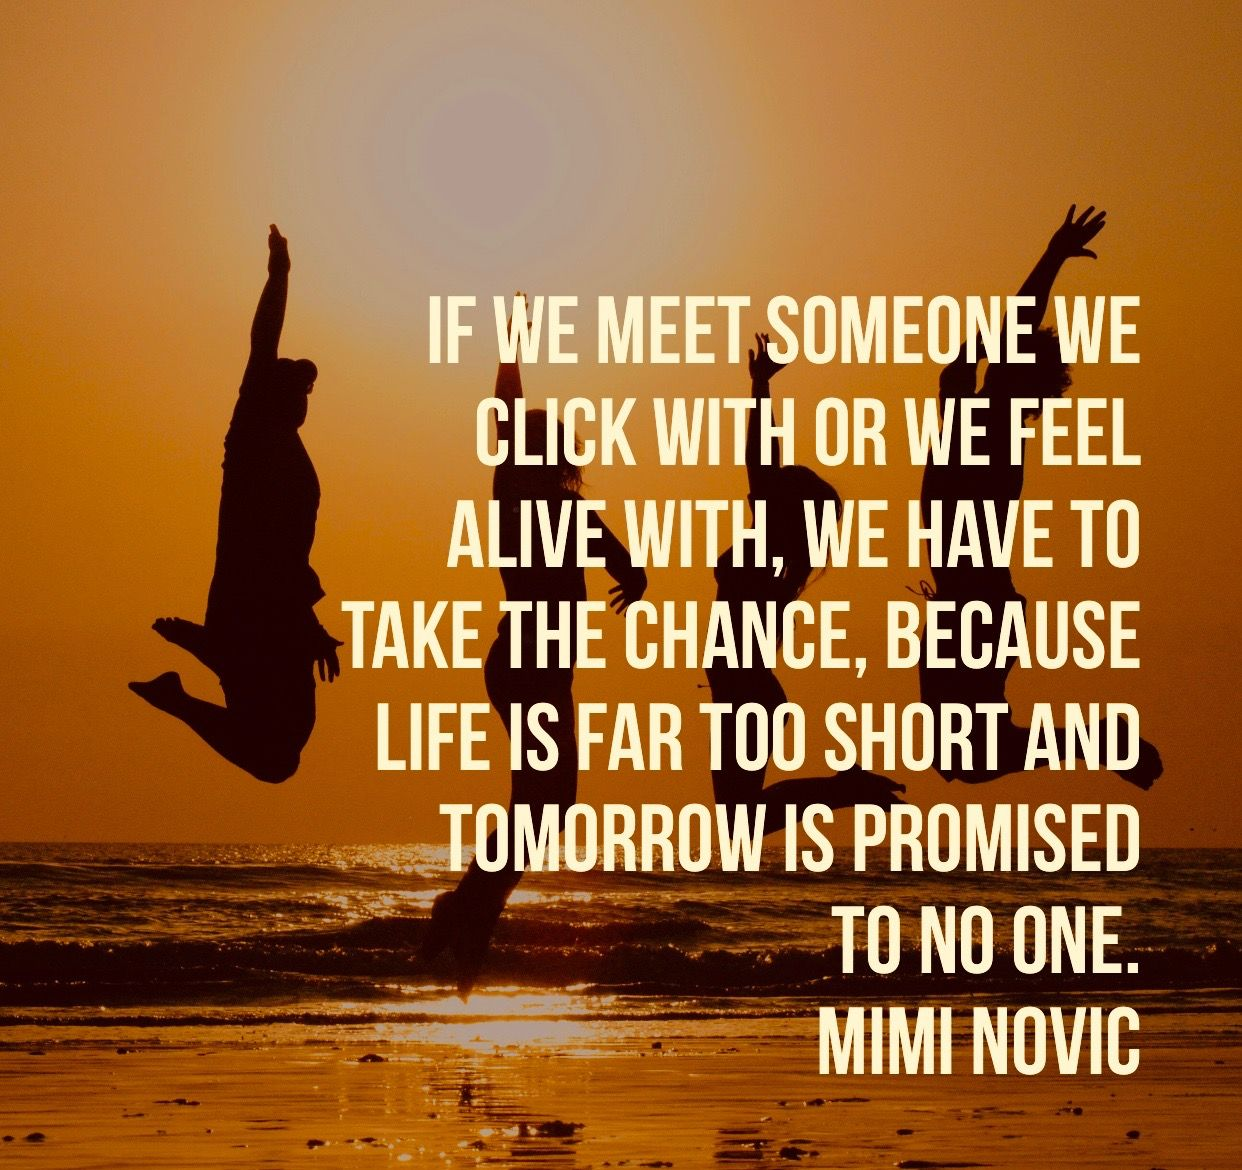 Quotes About Taking Chances And Living Life: Inspiring Quotes By Author Life Coach Mimi Novic Destiny